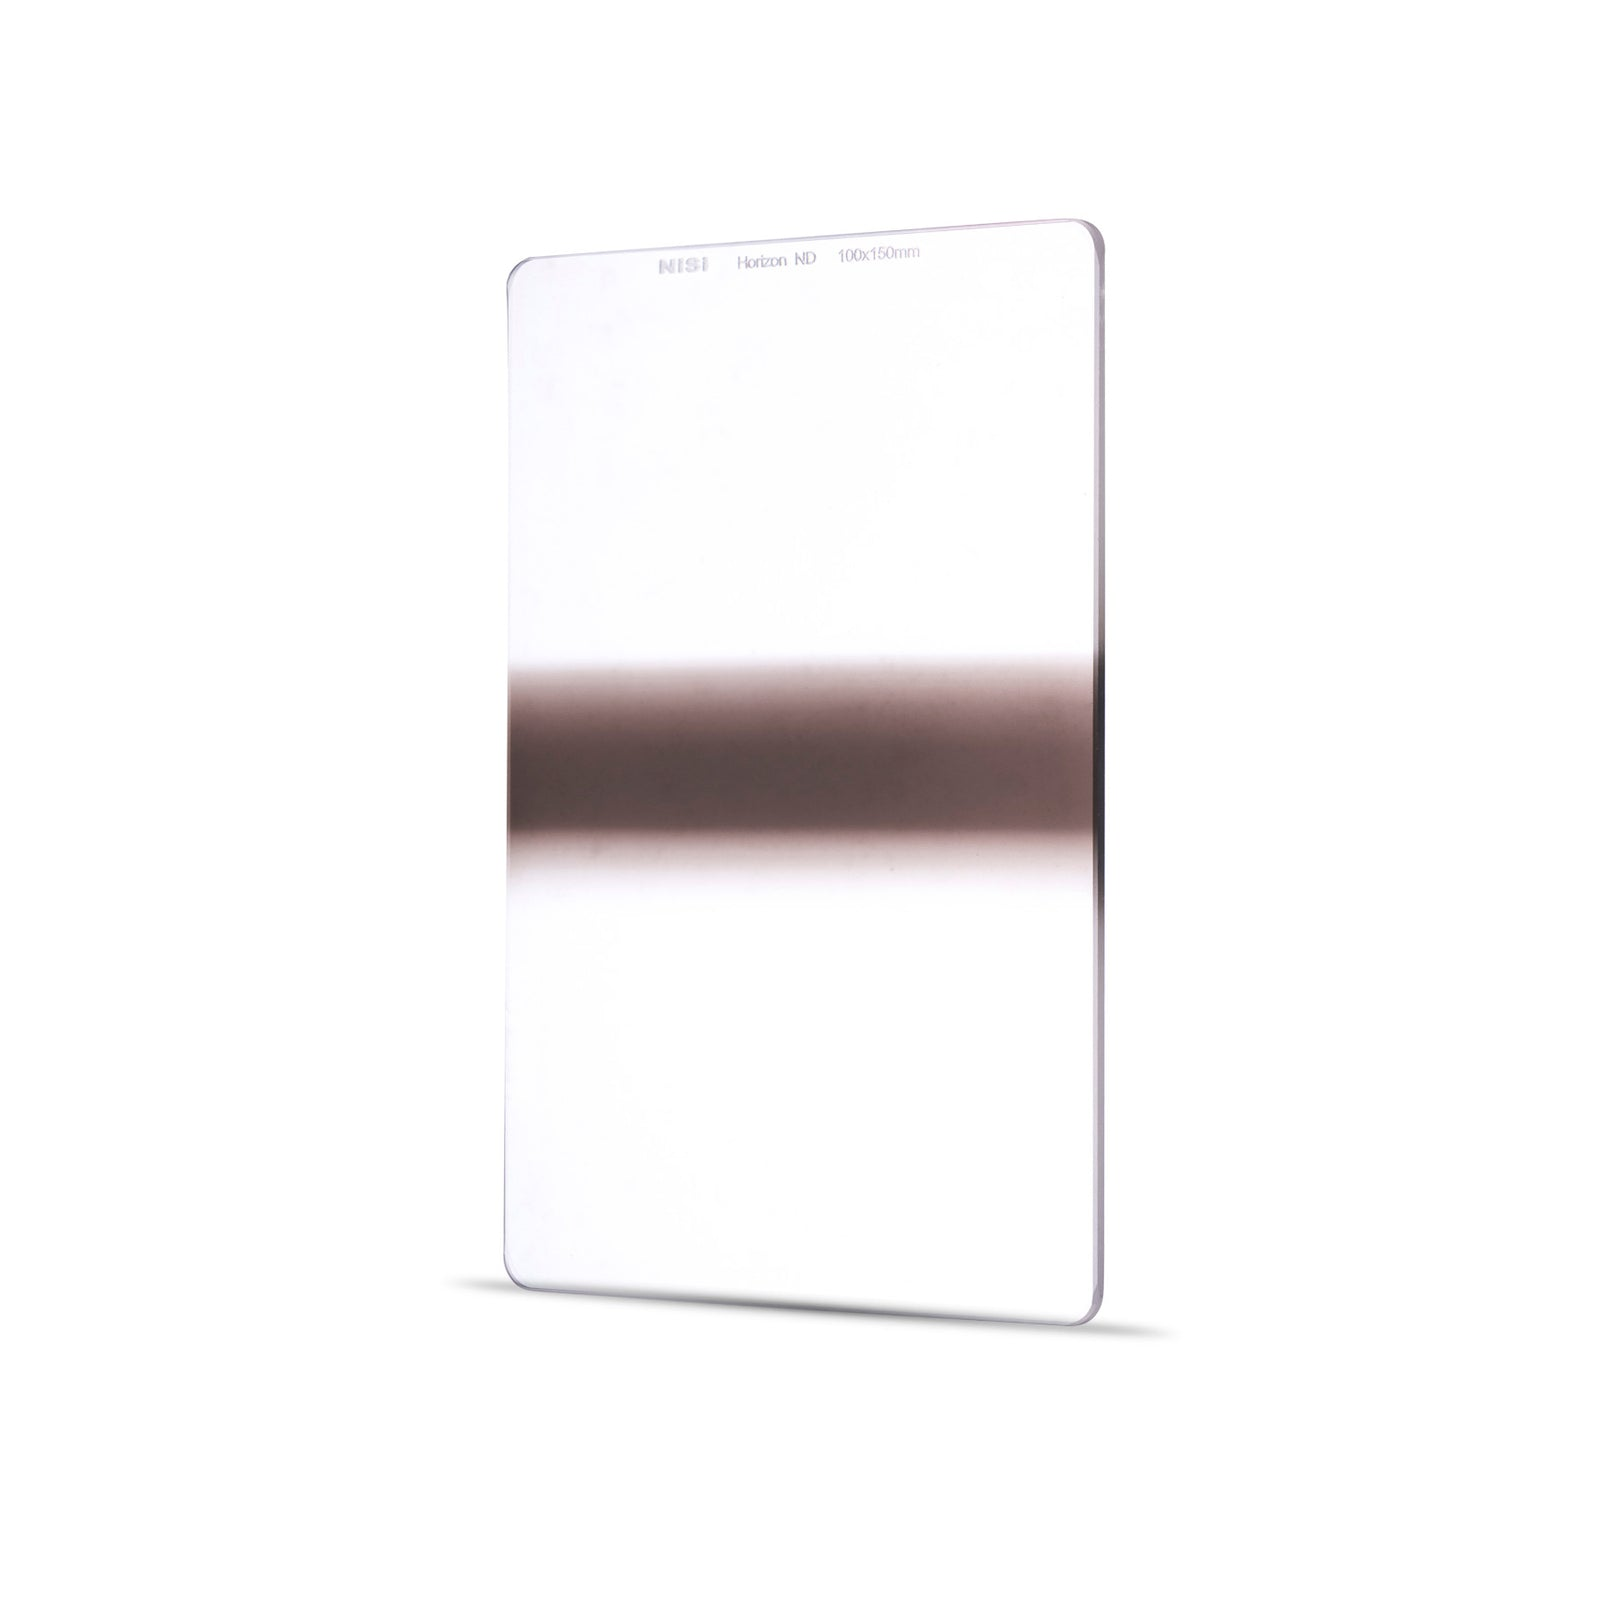 Neutral-Density-Filter-Horizon-Landscape-Filter-Nisi-Filters-100x150mm-Horizon-Graduated-4-Stop-Neutral-Density-Filter-Nisi-Filters-Australia